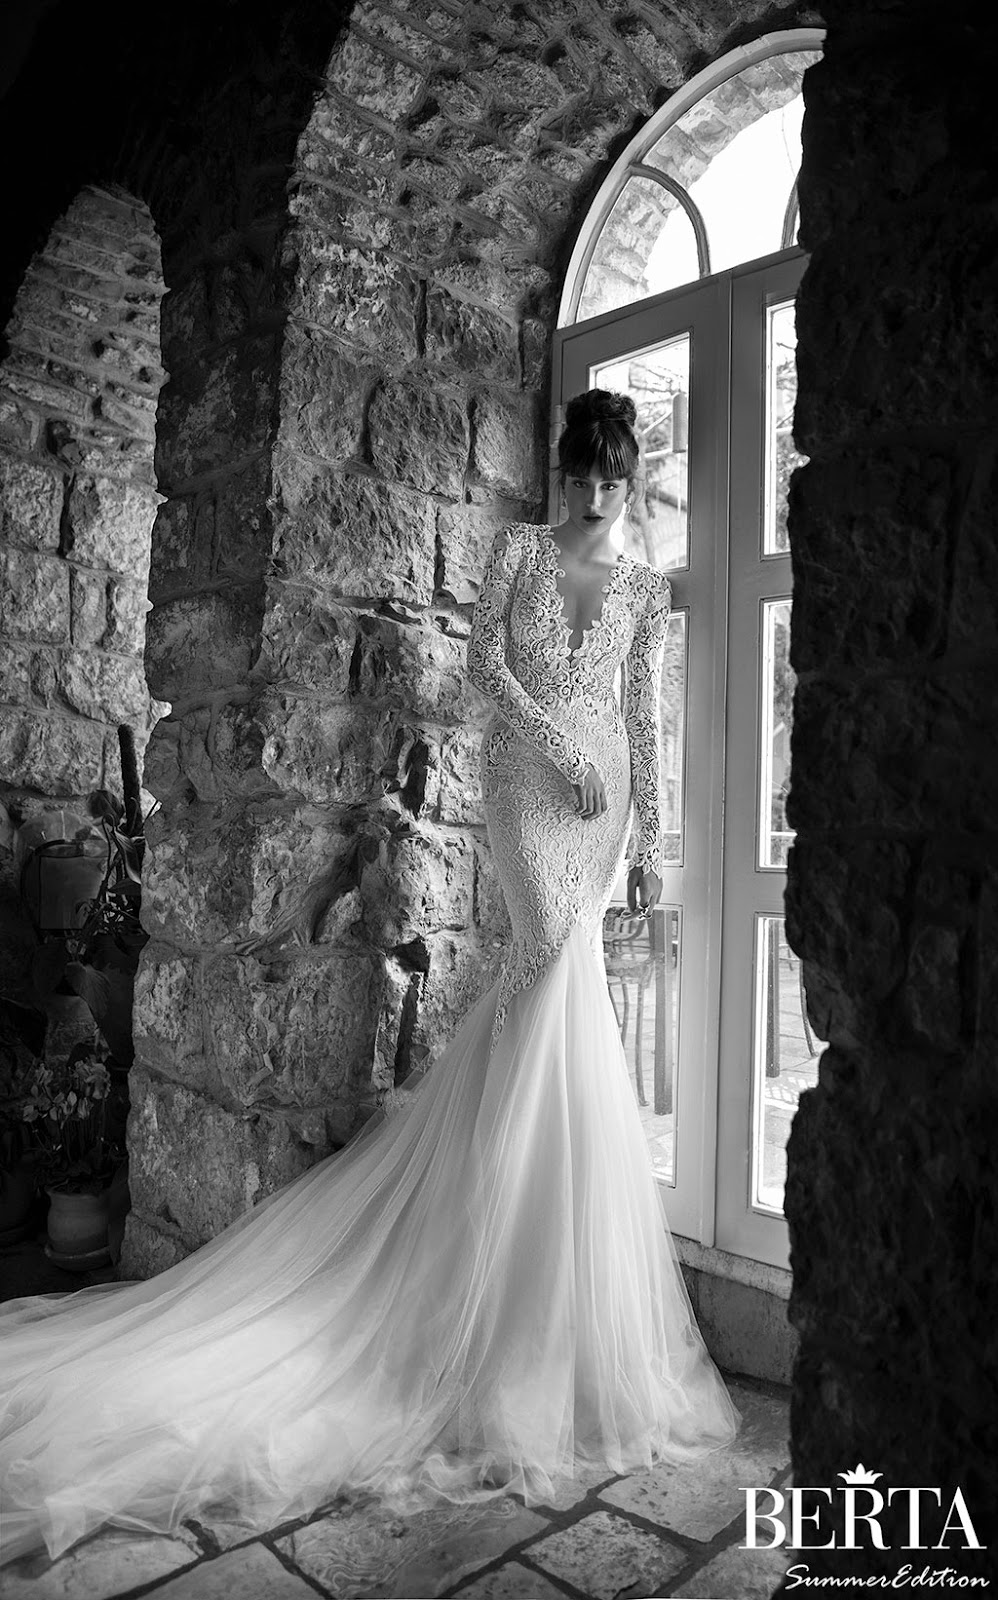 Wedding Dress - Berta Bridal Summer 2014 Collection